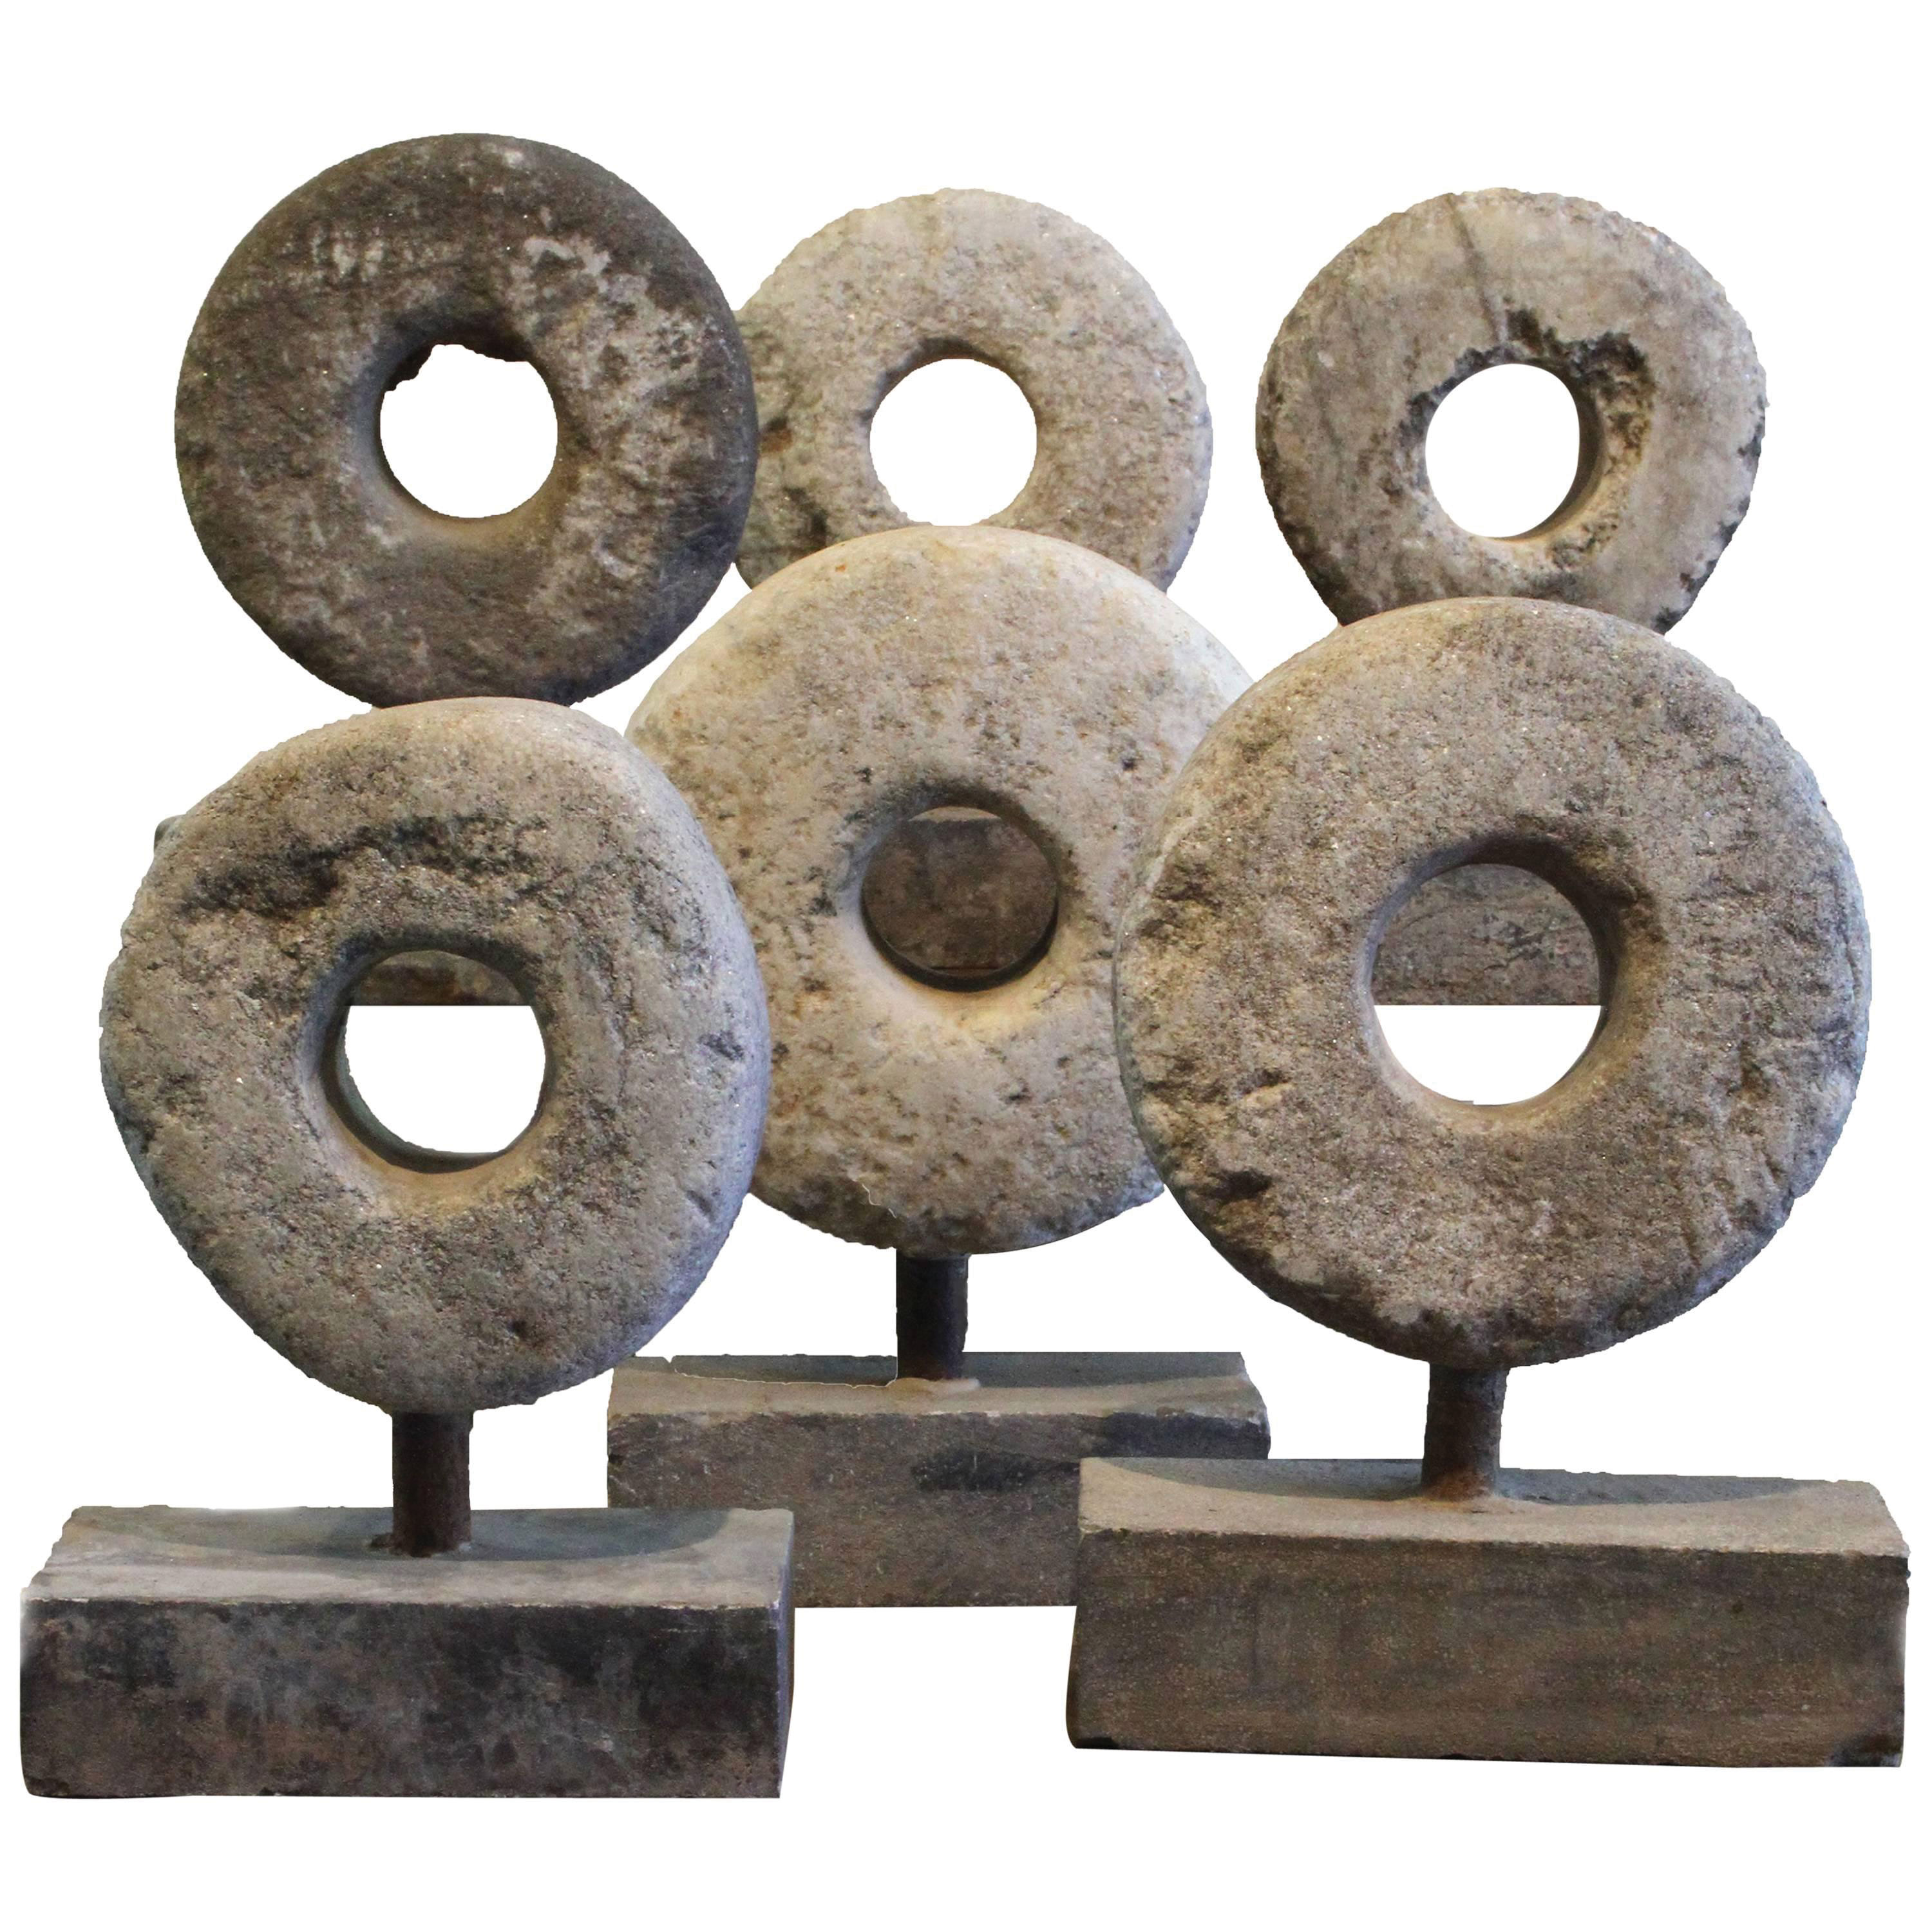 19th century french carved stone millstone spheres vintage decor